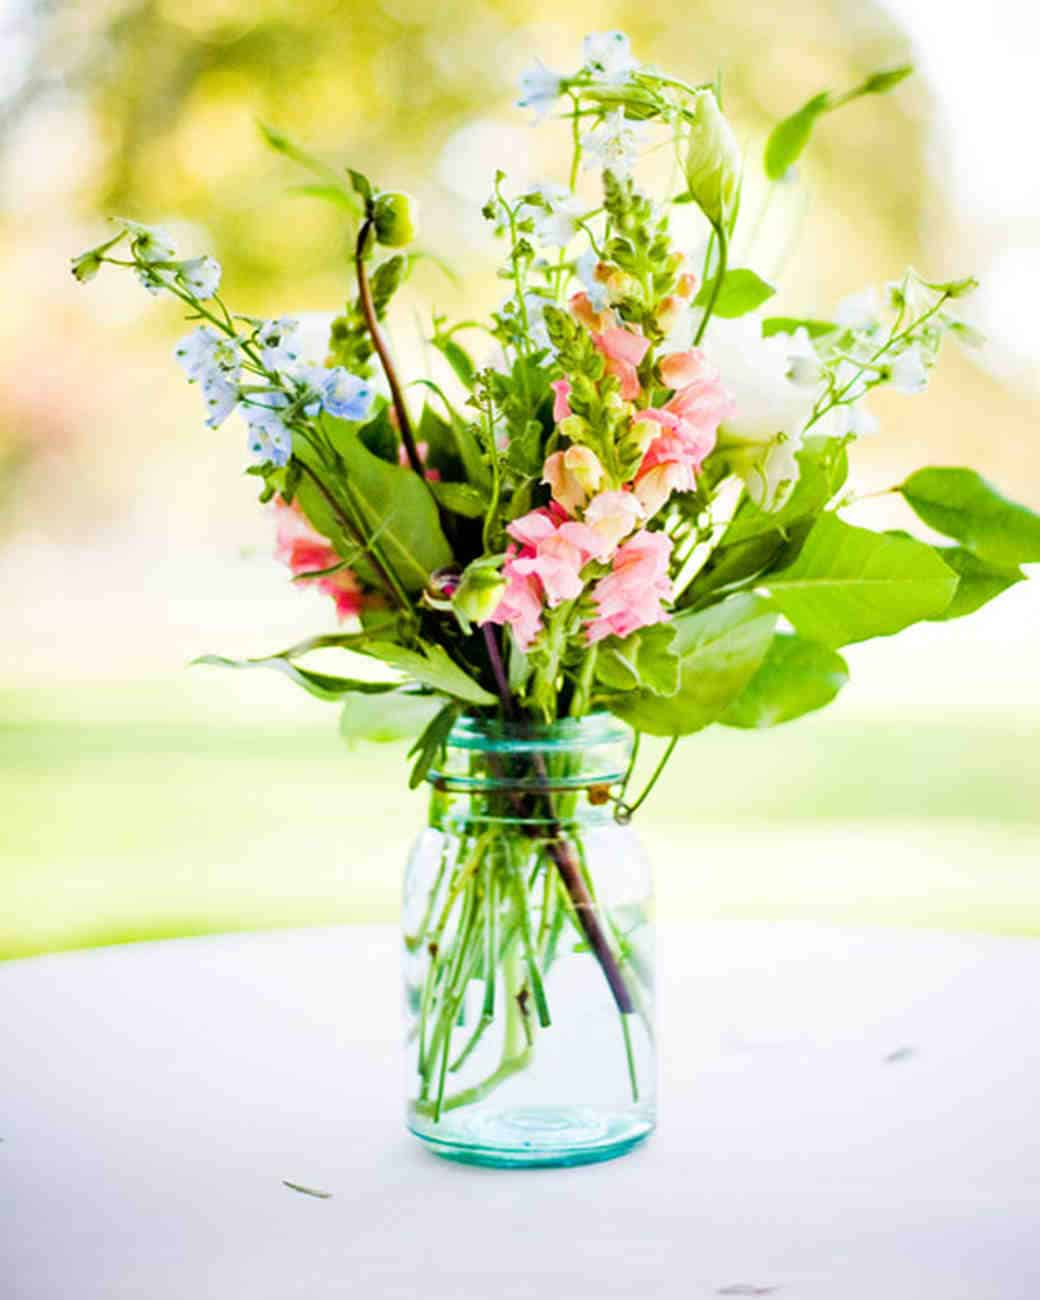 Display flowers in jars